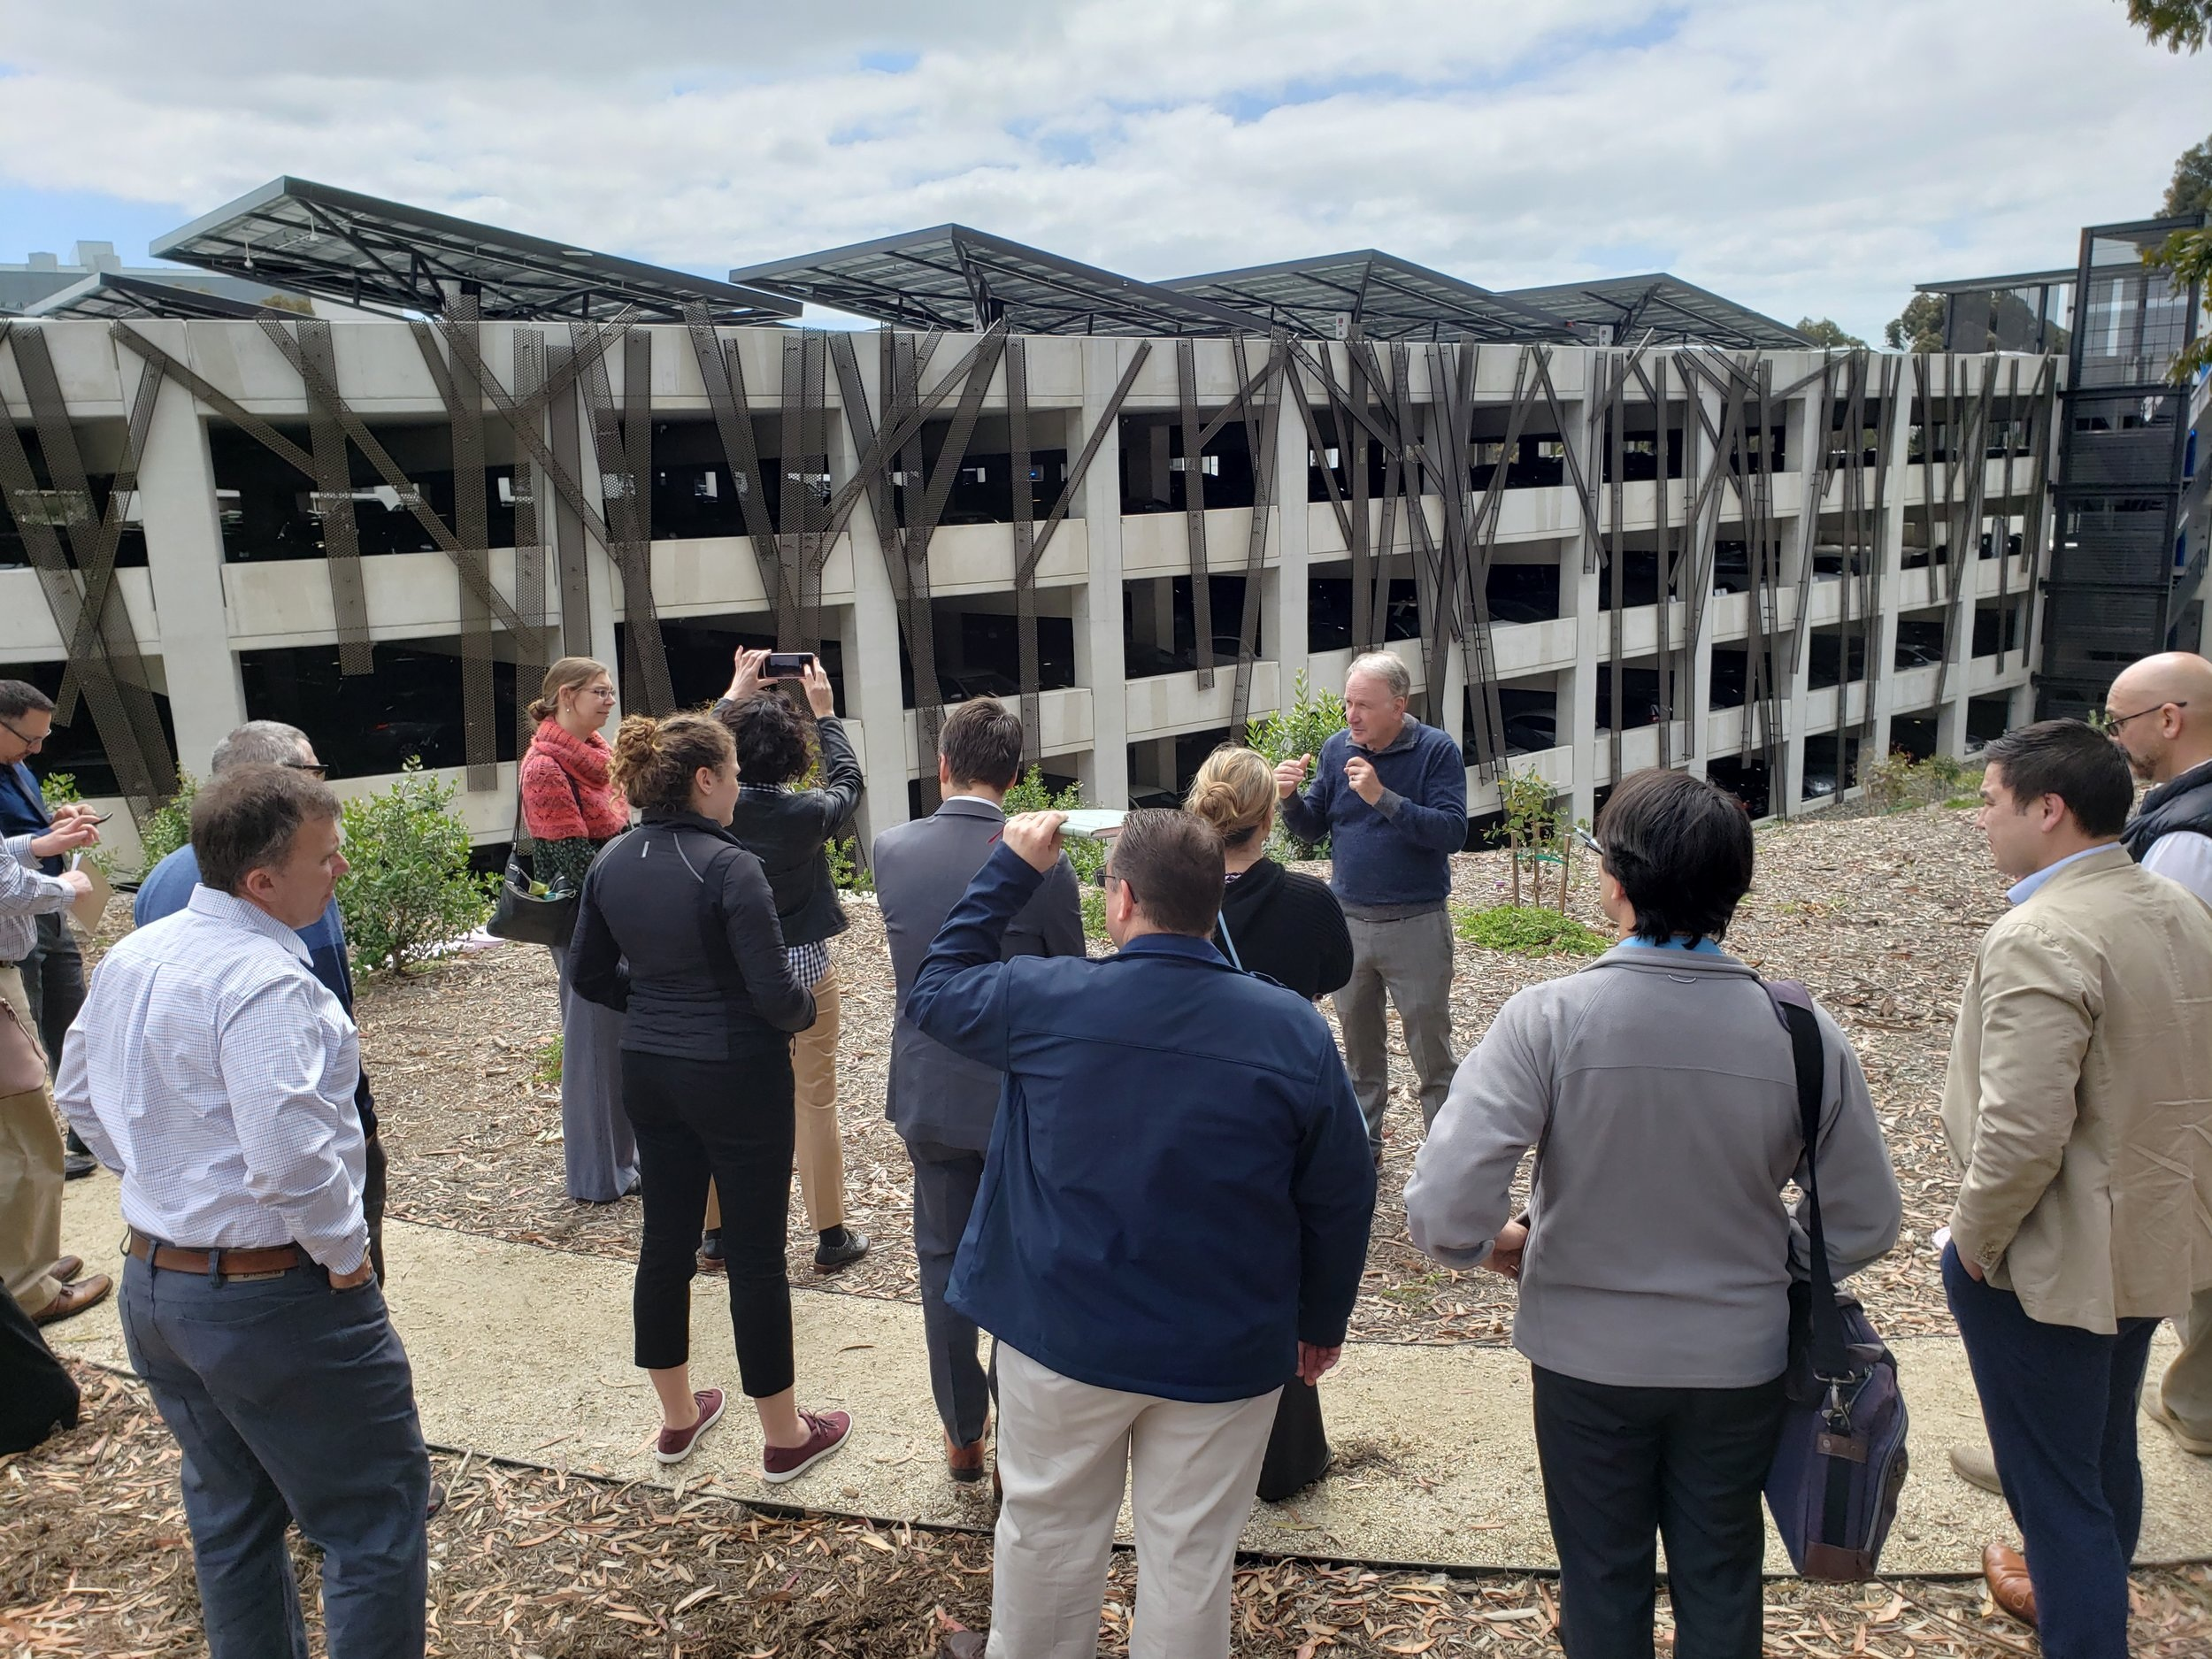 Dr. Byron Washom explains the value of mounted solar arrays, vehicle charging infrastructure, and their connection with the UCSD microgrid to the MERC Cohort at this parking facility.